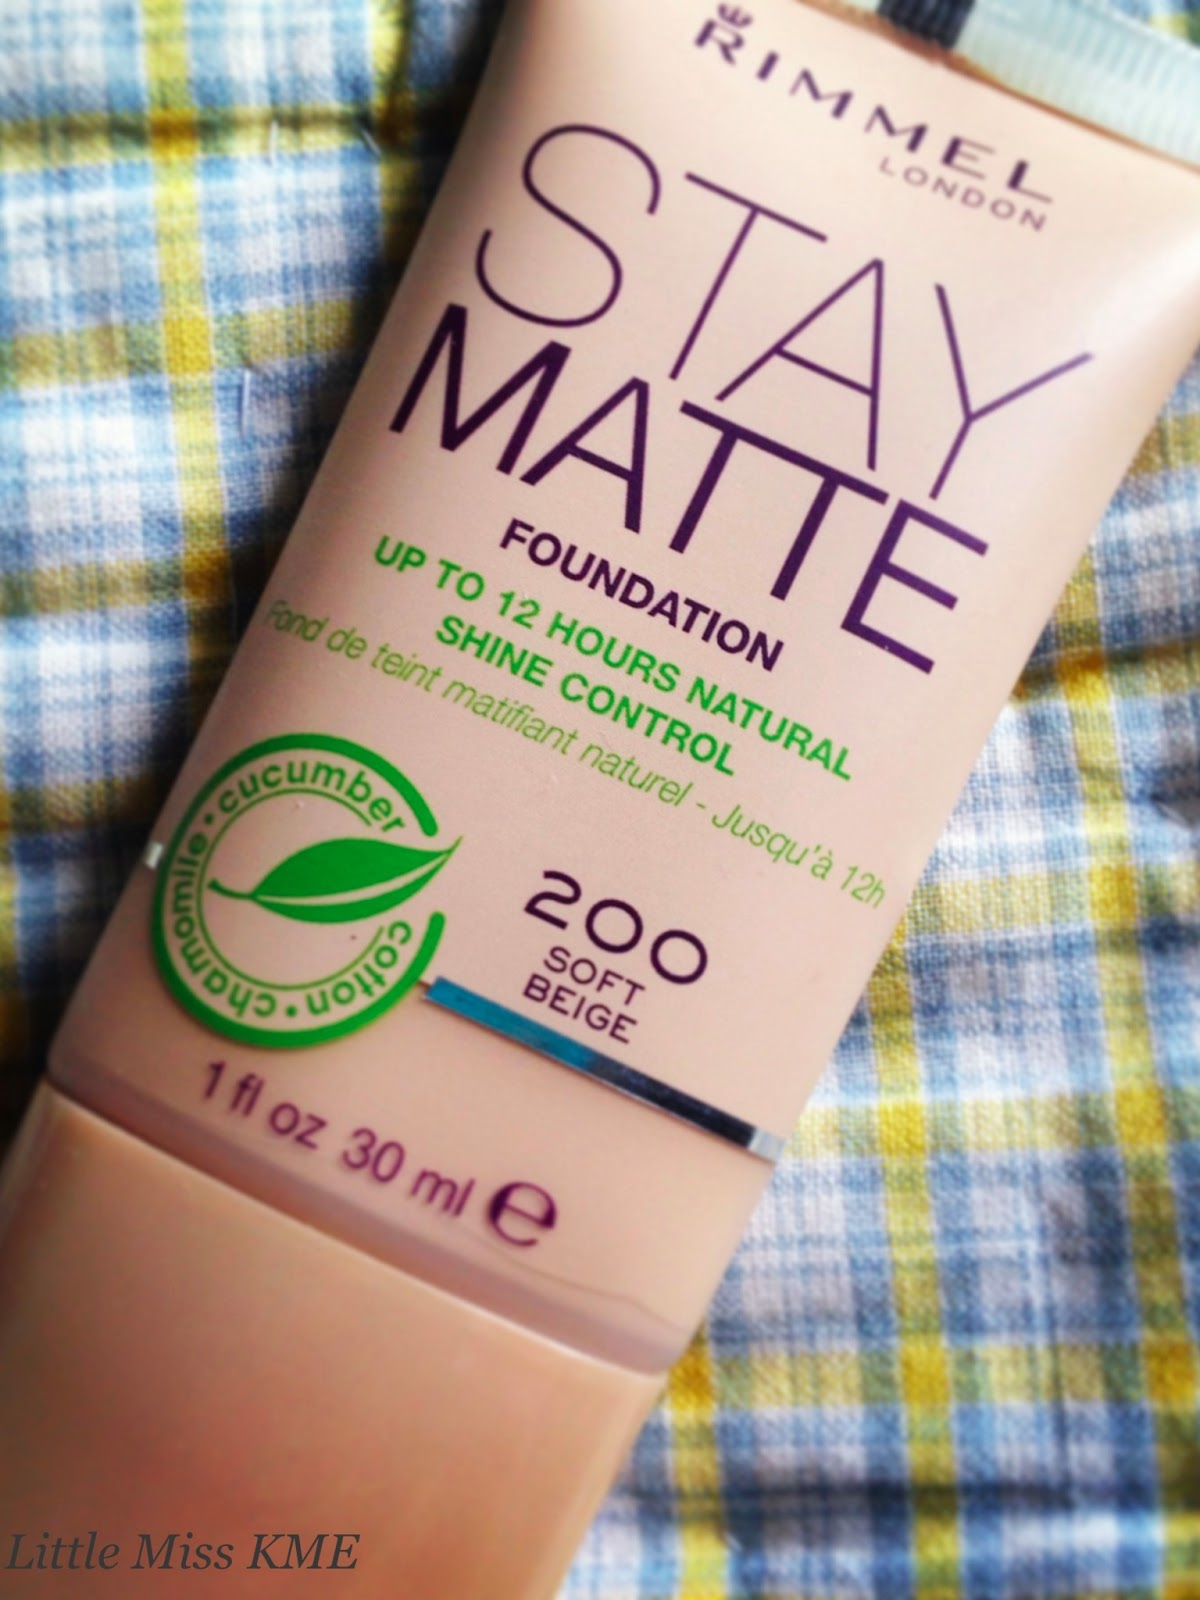 Rimmel Stay Matte Foundation Kiziwoo I Do Find Sometimes Get A Shiny T Zone So Opted For Rimmels Purchased Shade 200 Soft Beige Which Suits Me Perfectly During